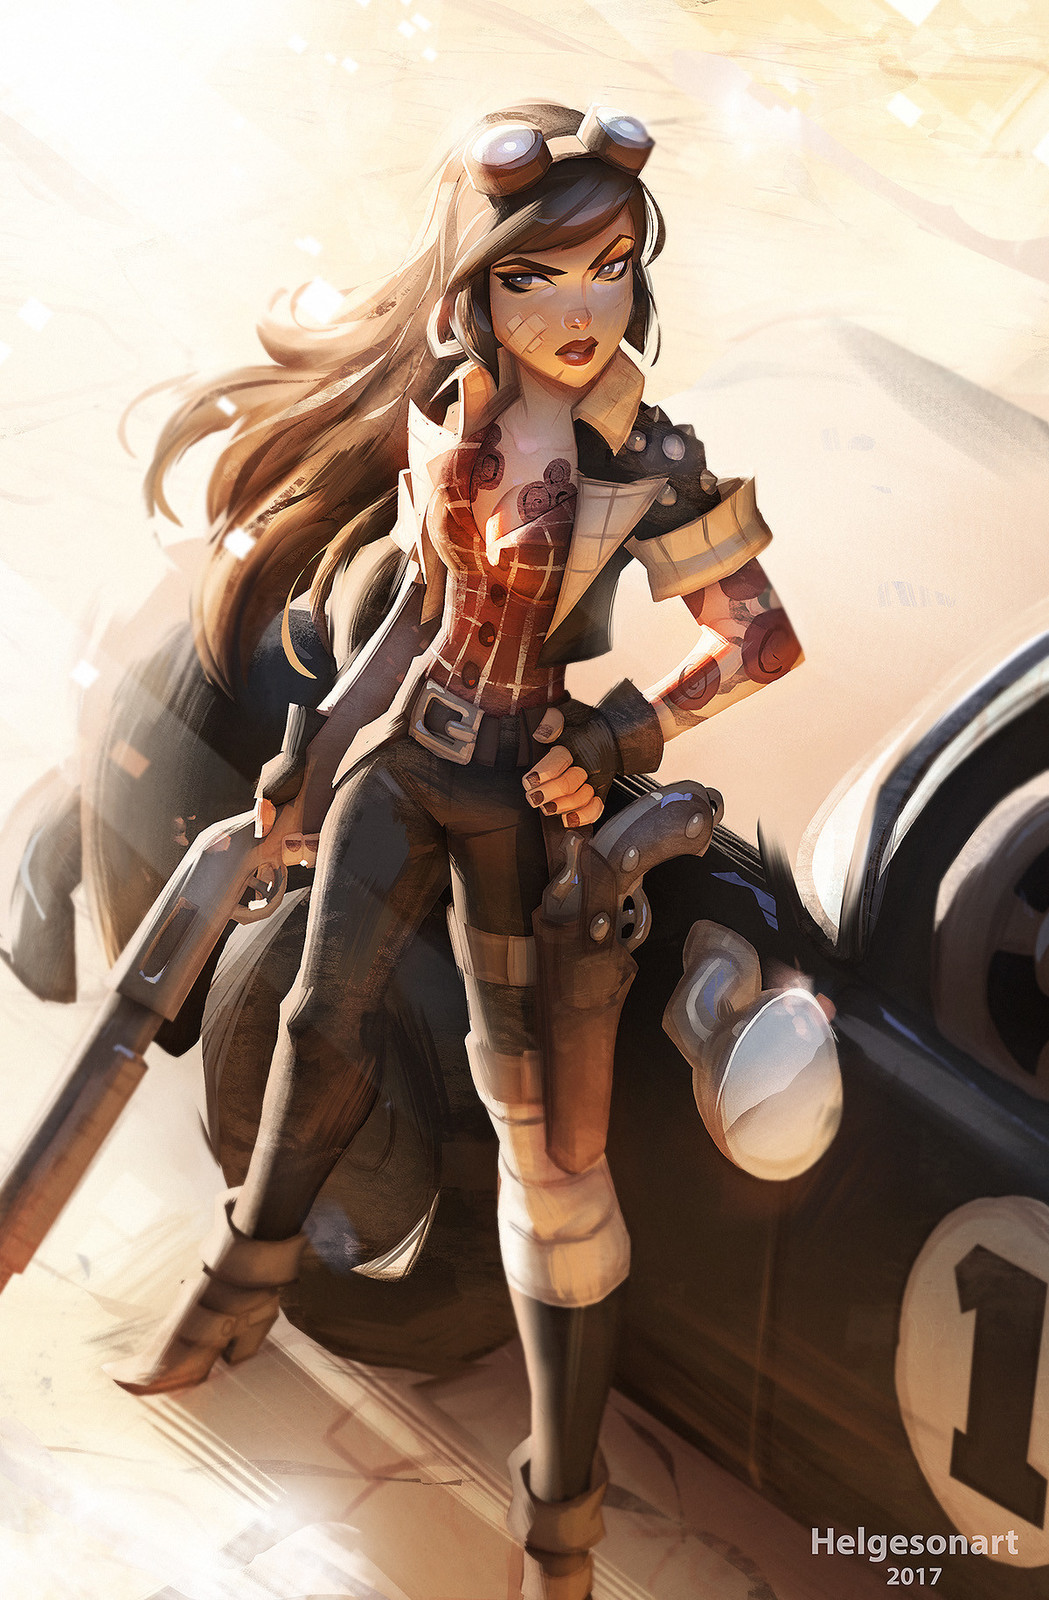 Original Concept by Johannes Helgeson